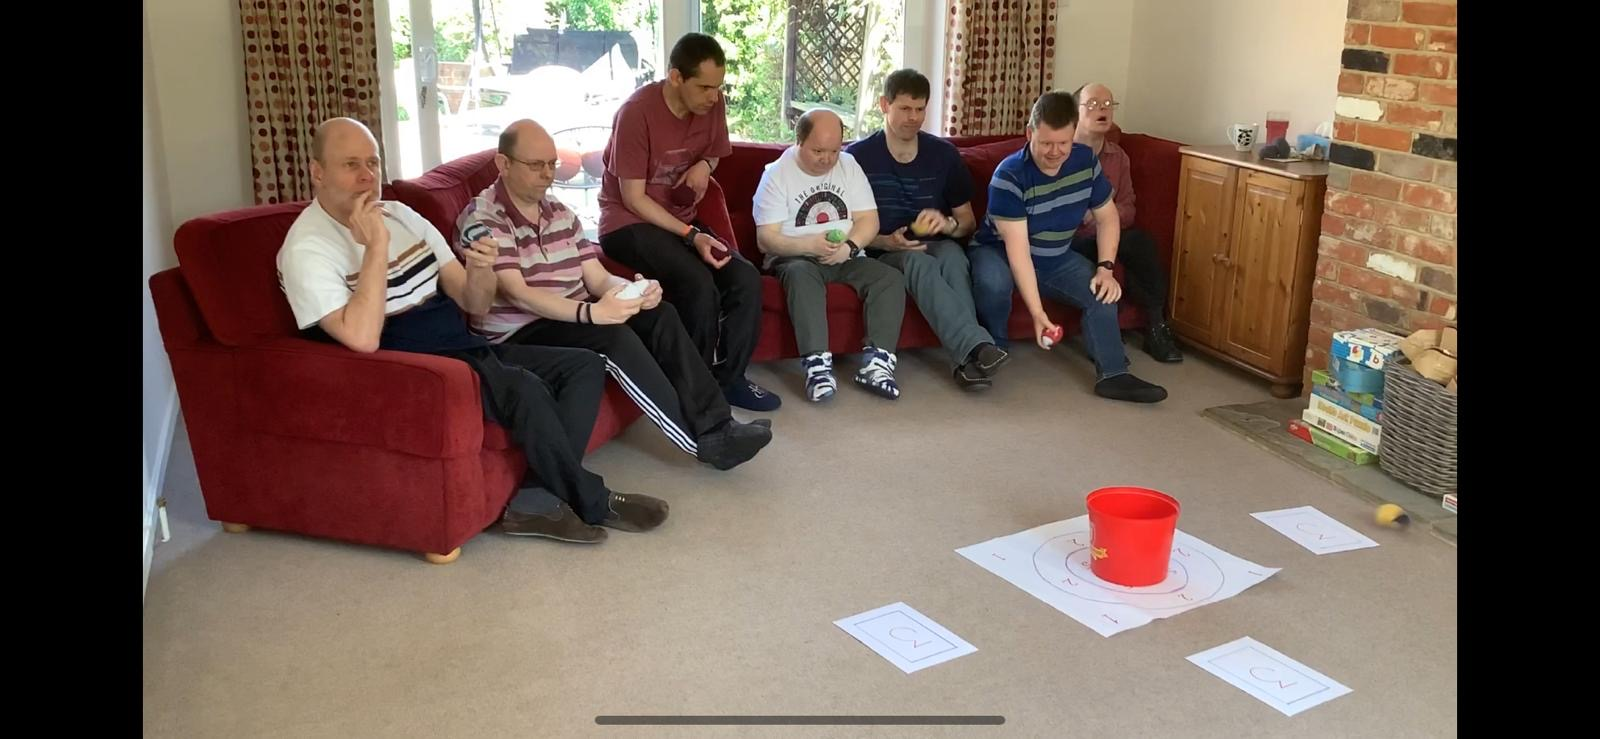 Sport For Confidence delivers of more than 1,000 remote physical activity sessions during lockdown to vulnerable adults